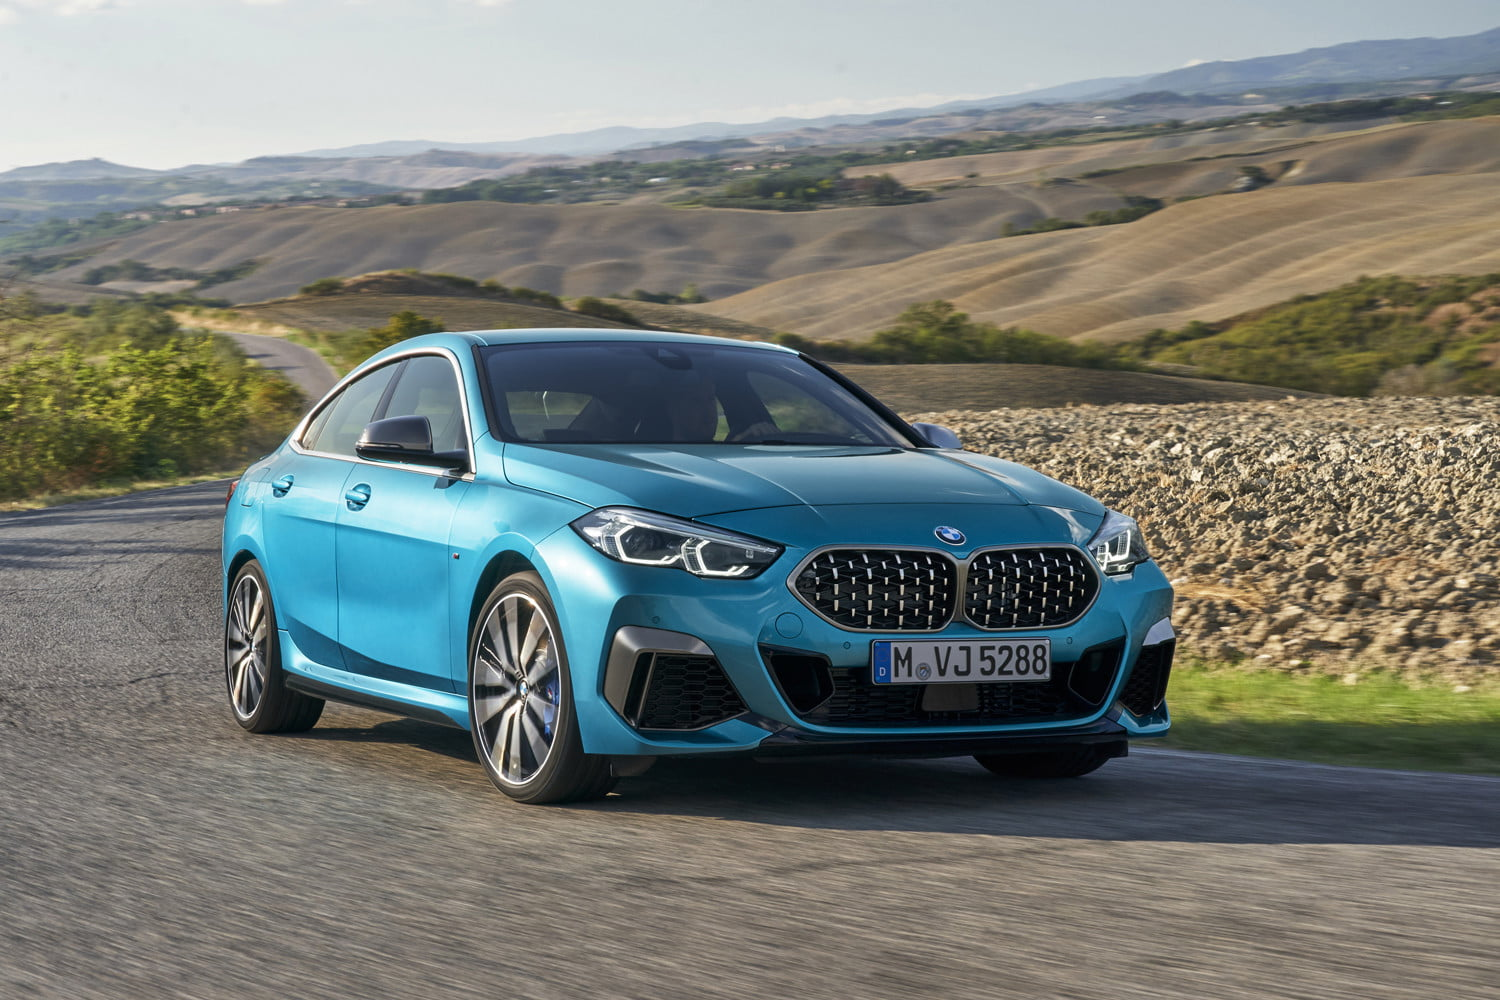 BMW's entry-level 2 Series Gran Coupe packs big tech in a small package